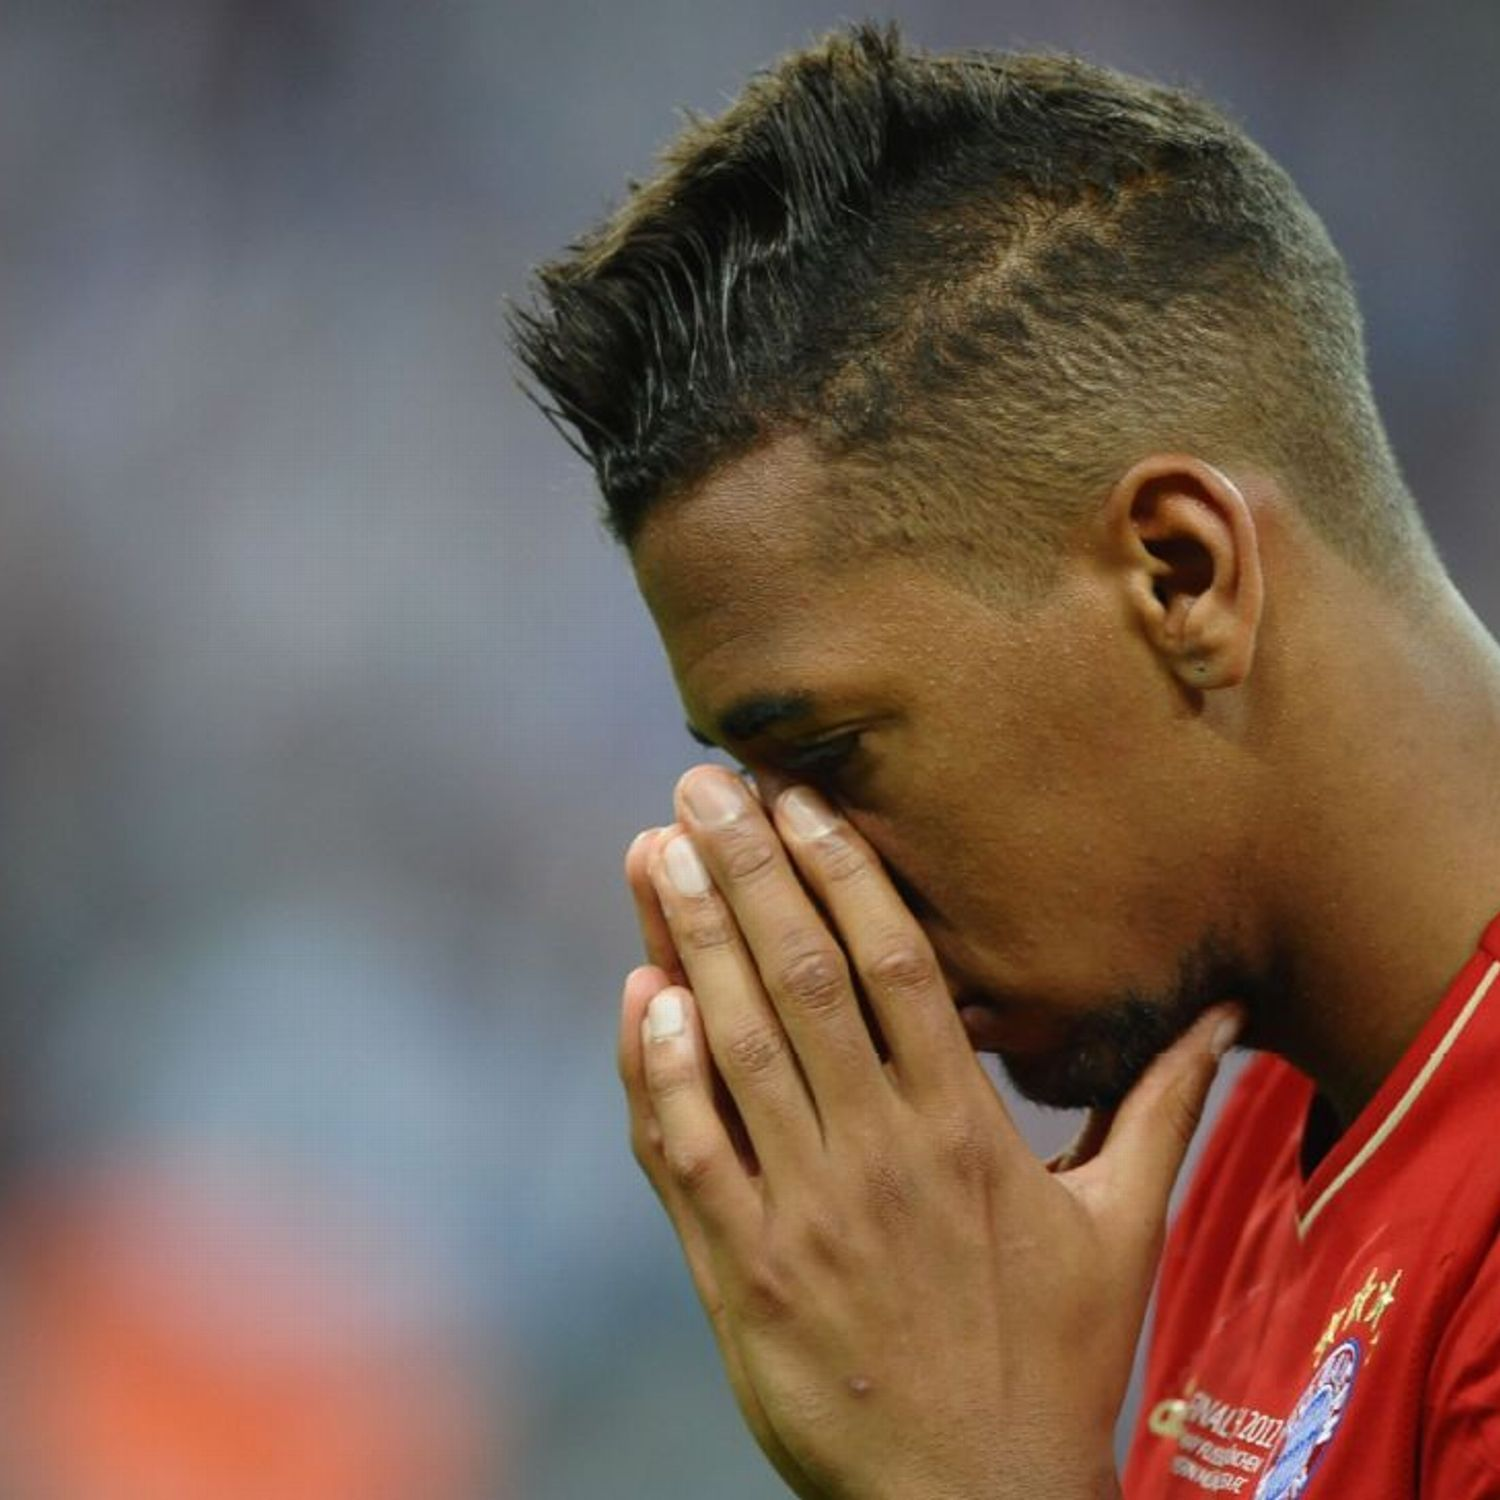 Bayern S Jerome Boateng Couldn T Eat For Two Days After Ucl Loss To Chelsea Jerome Boateng Bayern Champions League Final